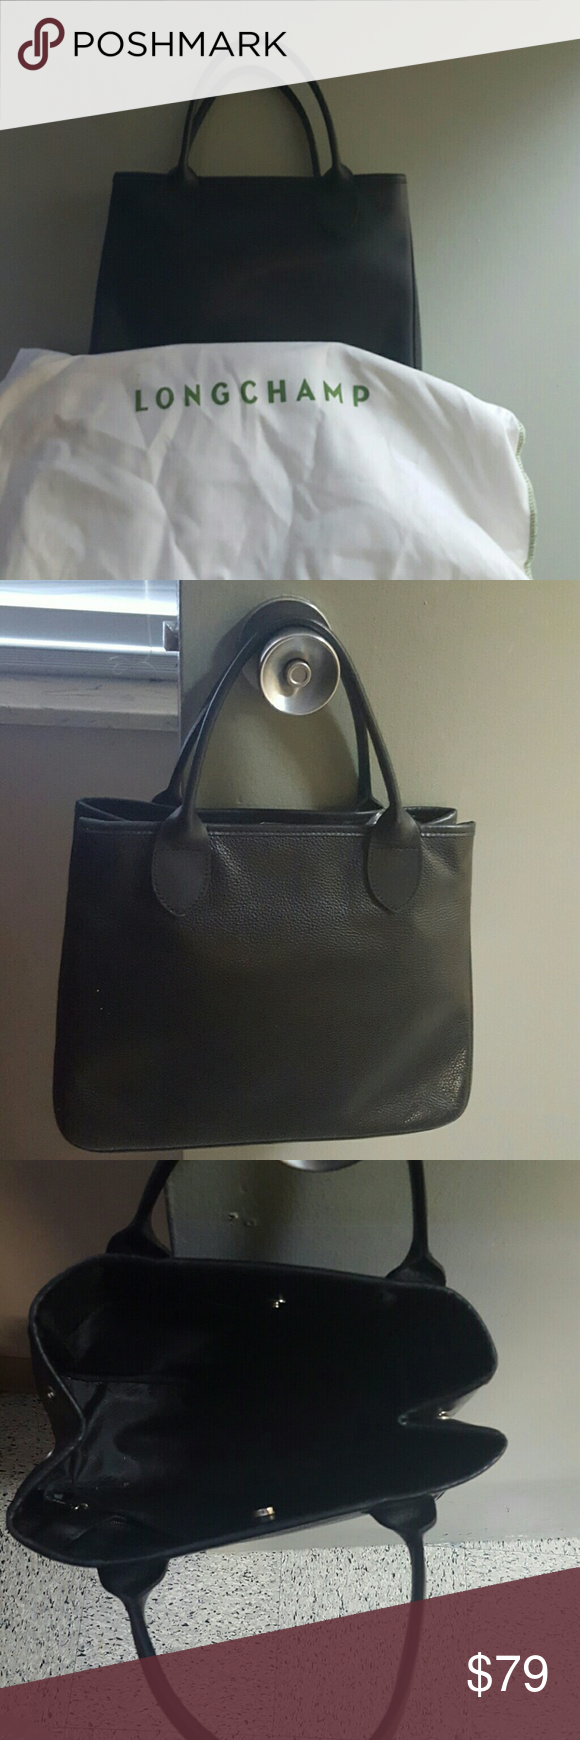 AUTHENTIC LONGCHAMP BLACK LEATHER SATCHEL Authentic Longchamp black leather satchel handbag with dustcover, beautiful, lightly used no marks no problems, 11w, 10h, 5d, Bags Satchels